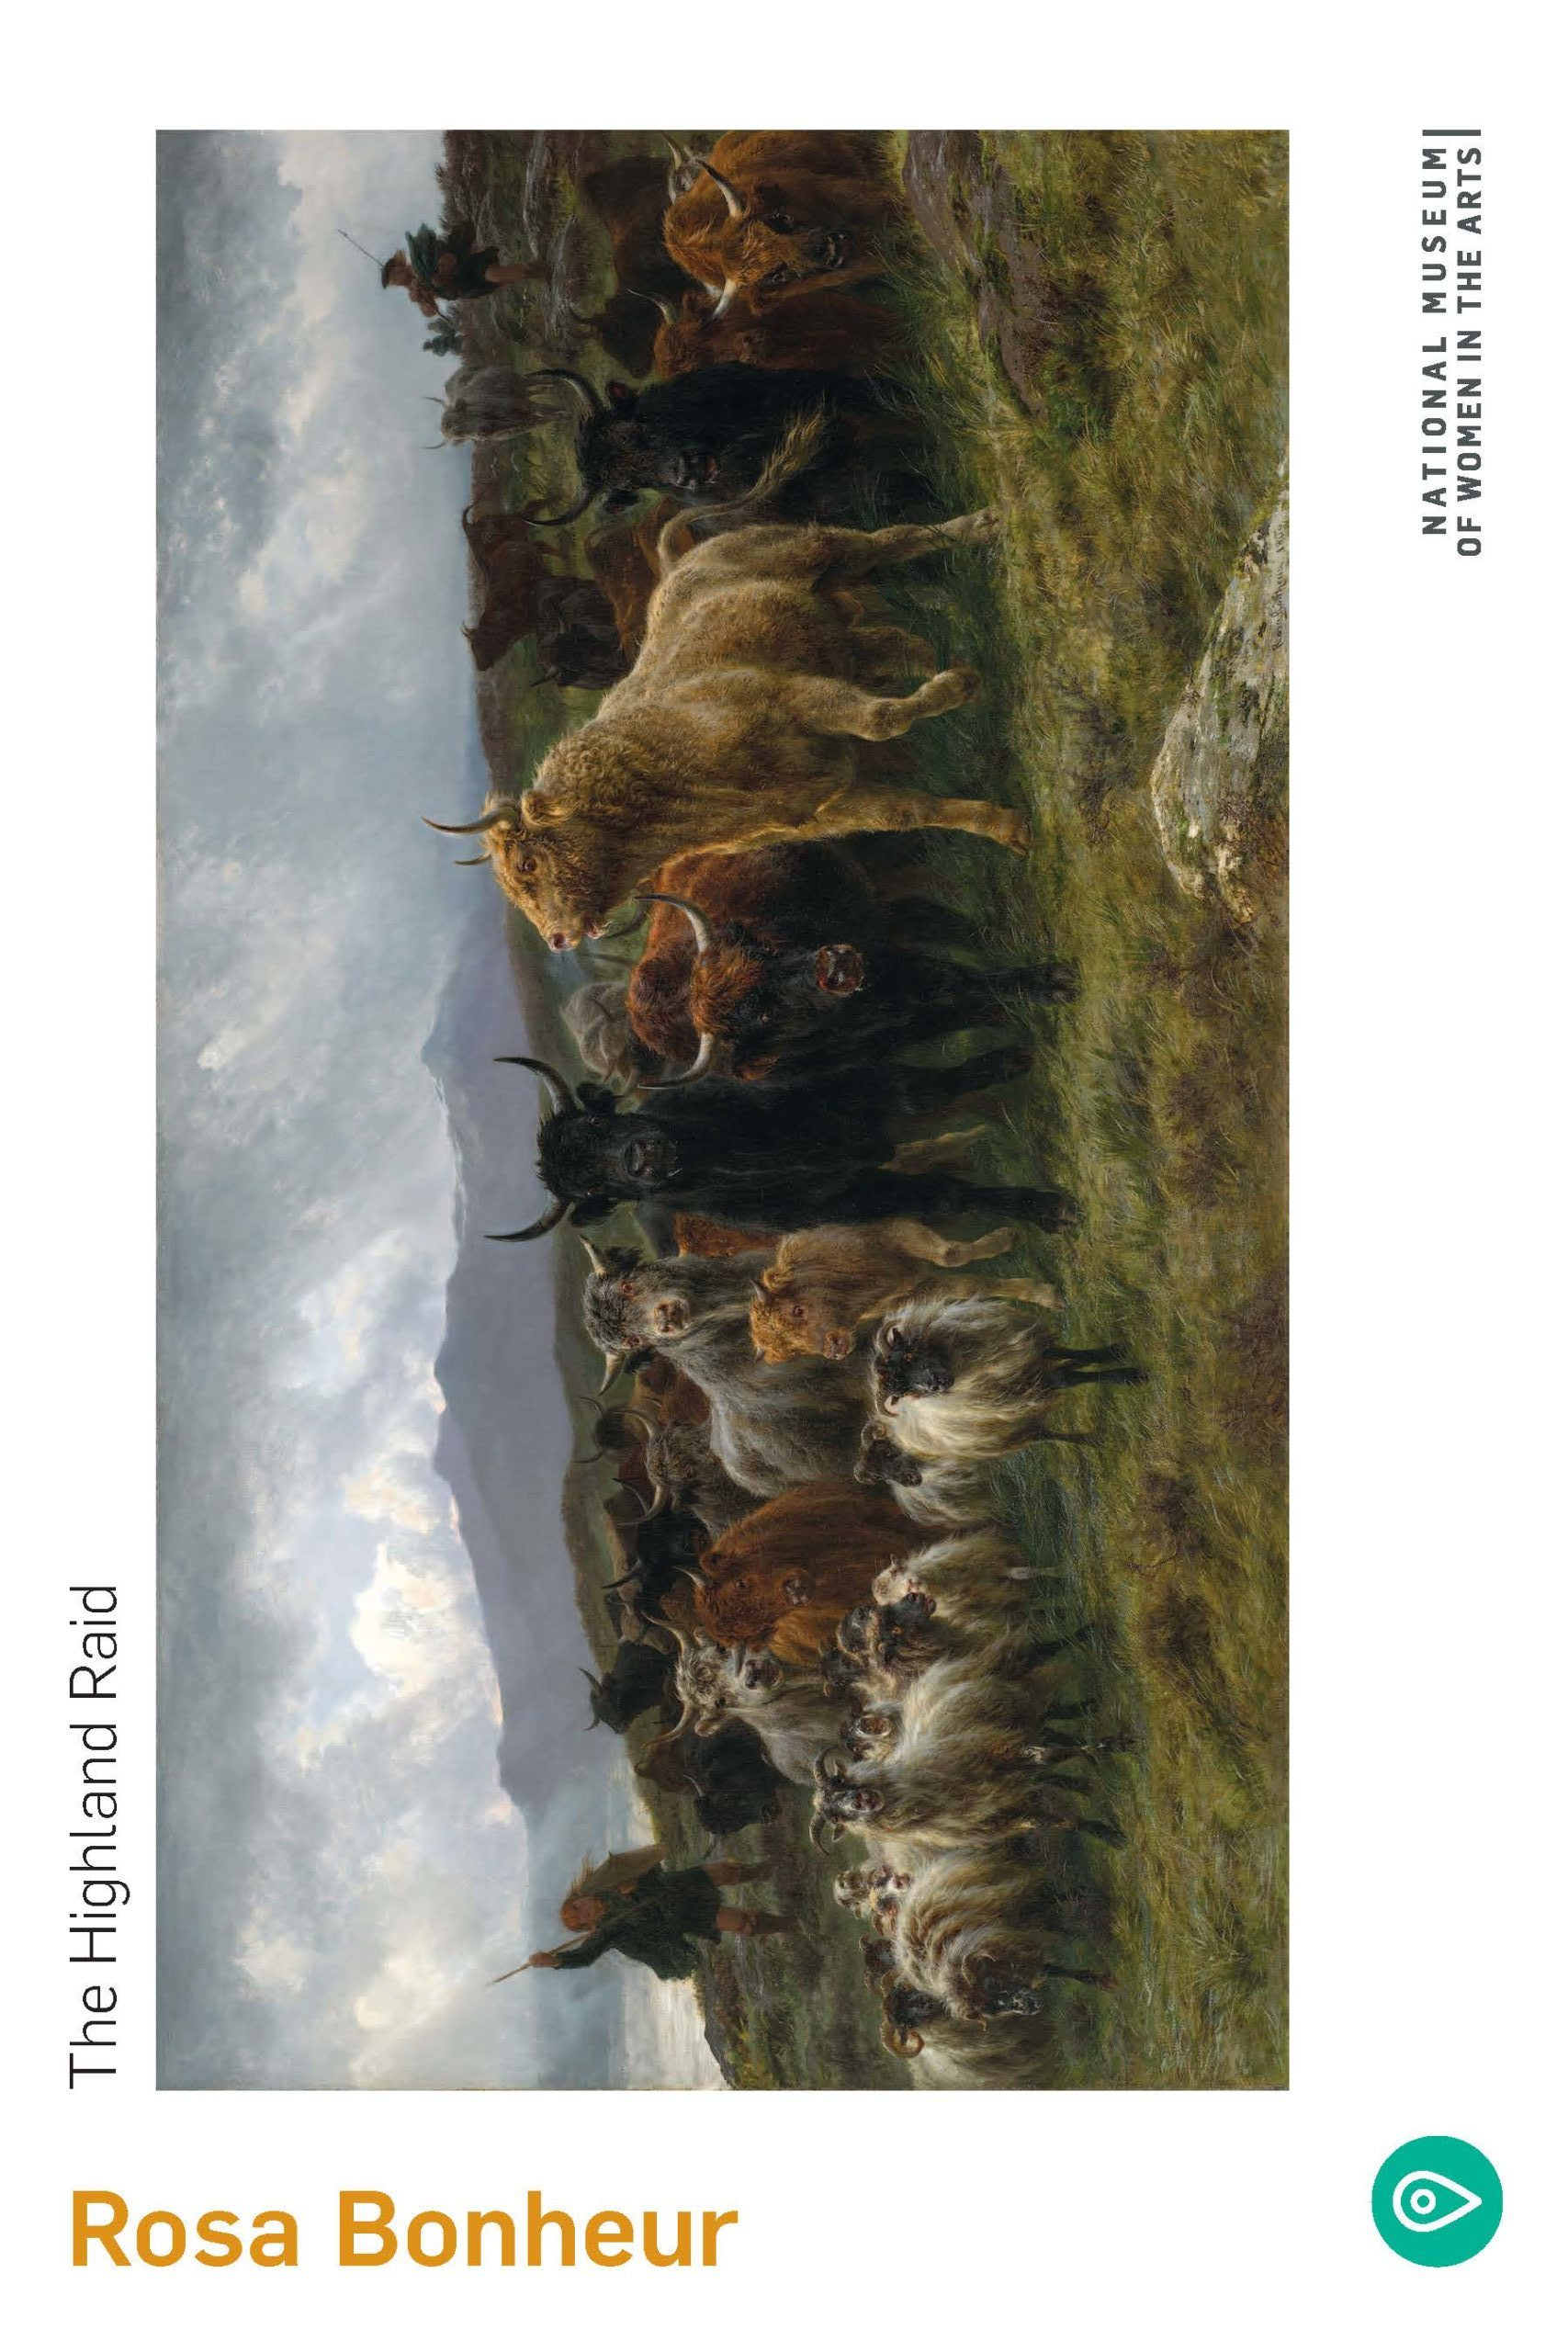 Facts about the artist Rosa Bonheur and her paintings (PDF)